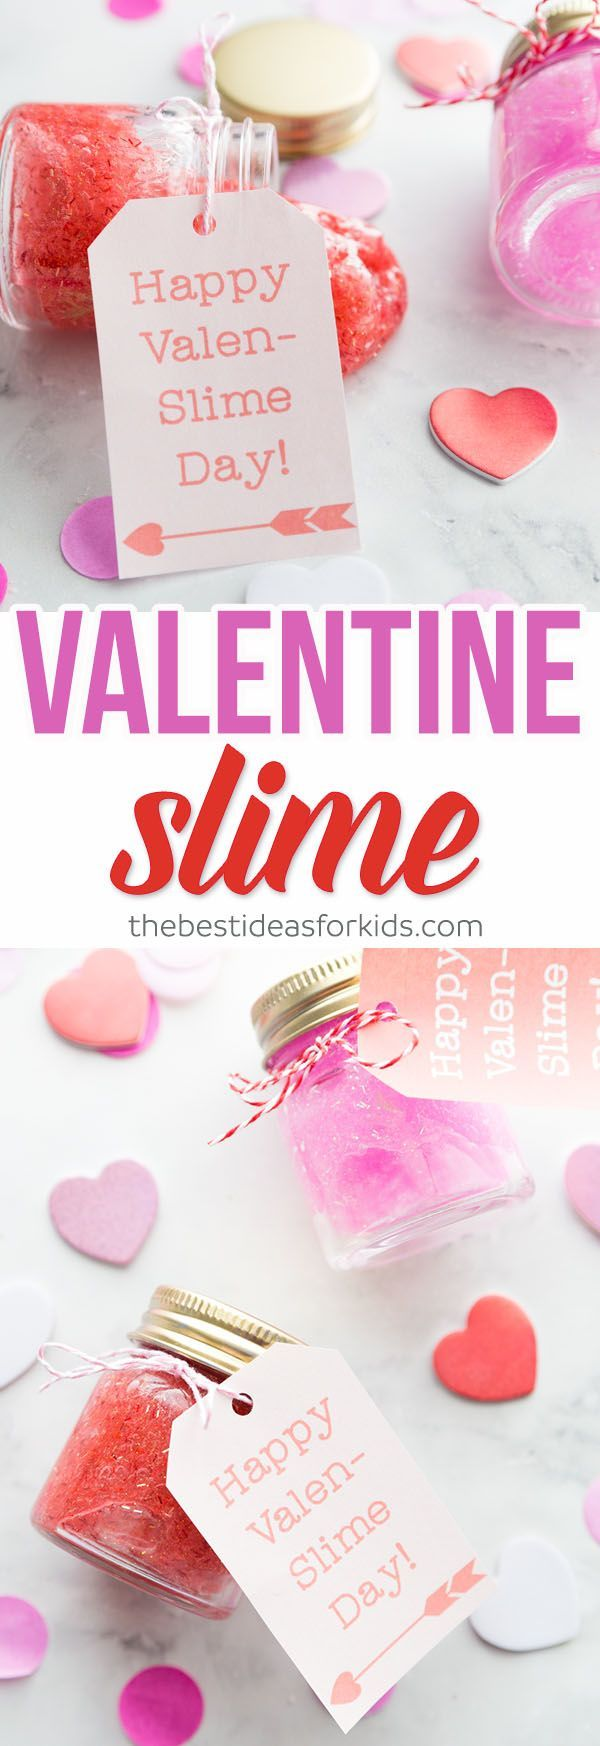 Non food valentine for school - Valentine Slime